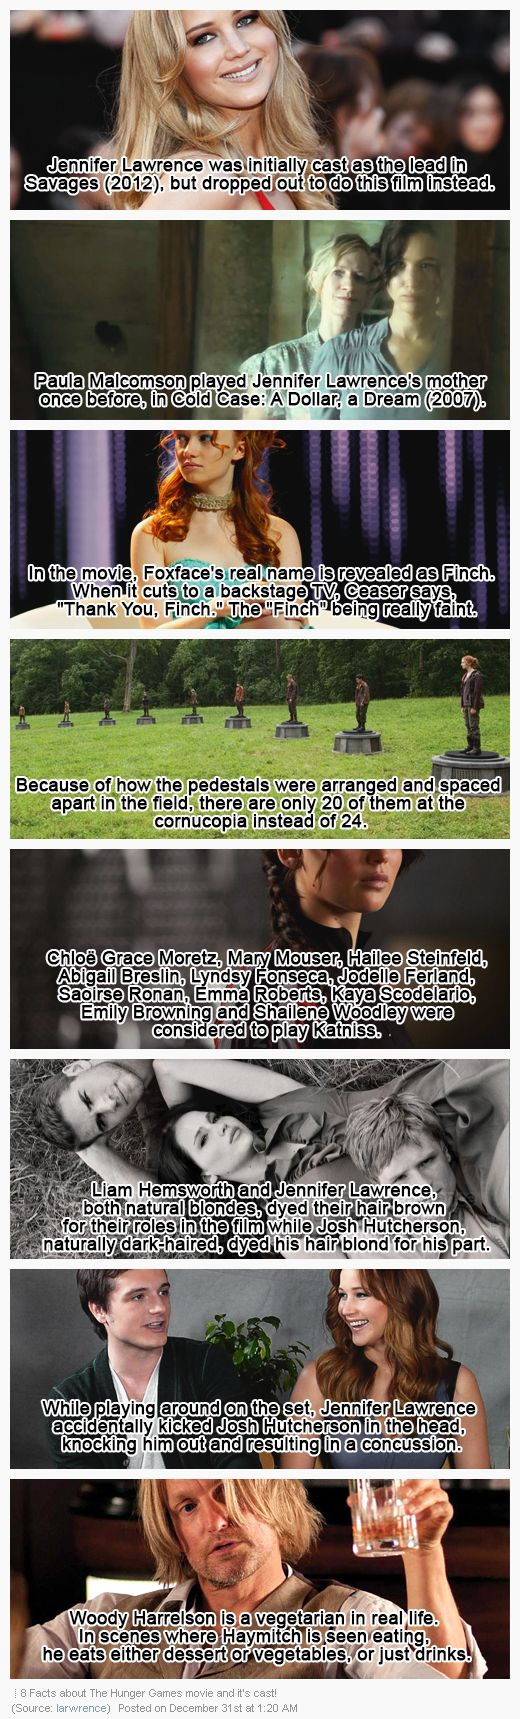 8 Facts about The Hunger Games and its cast